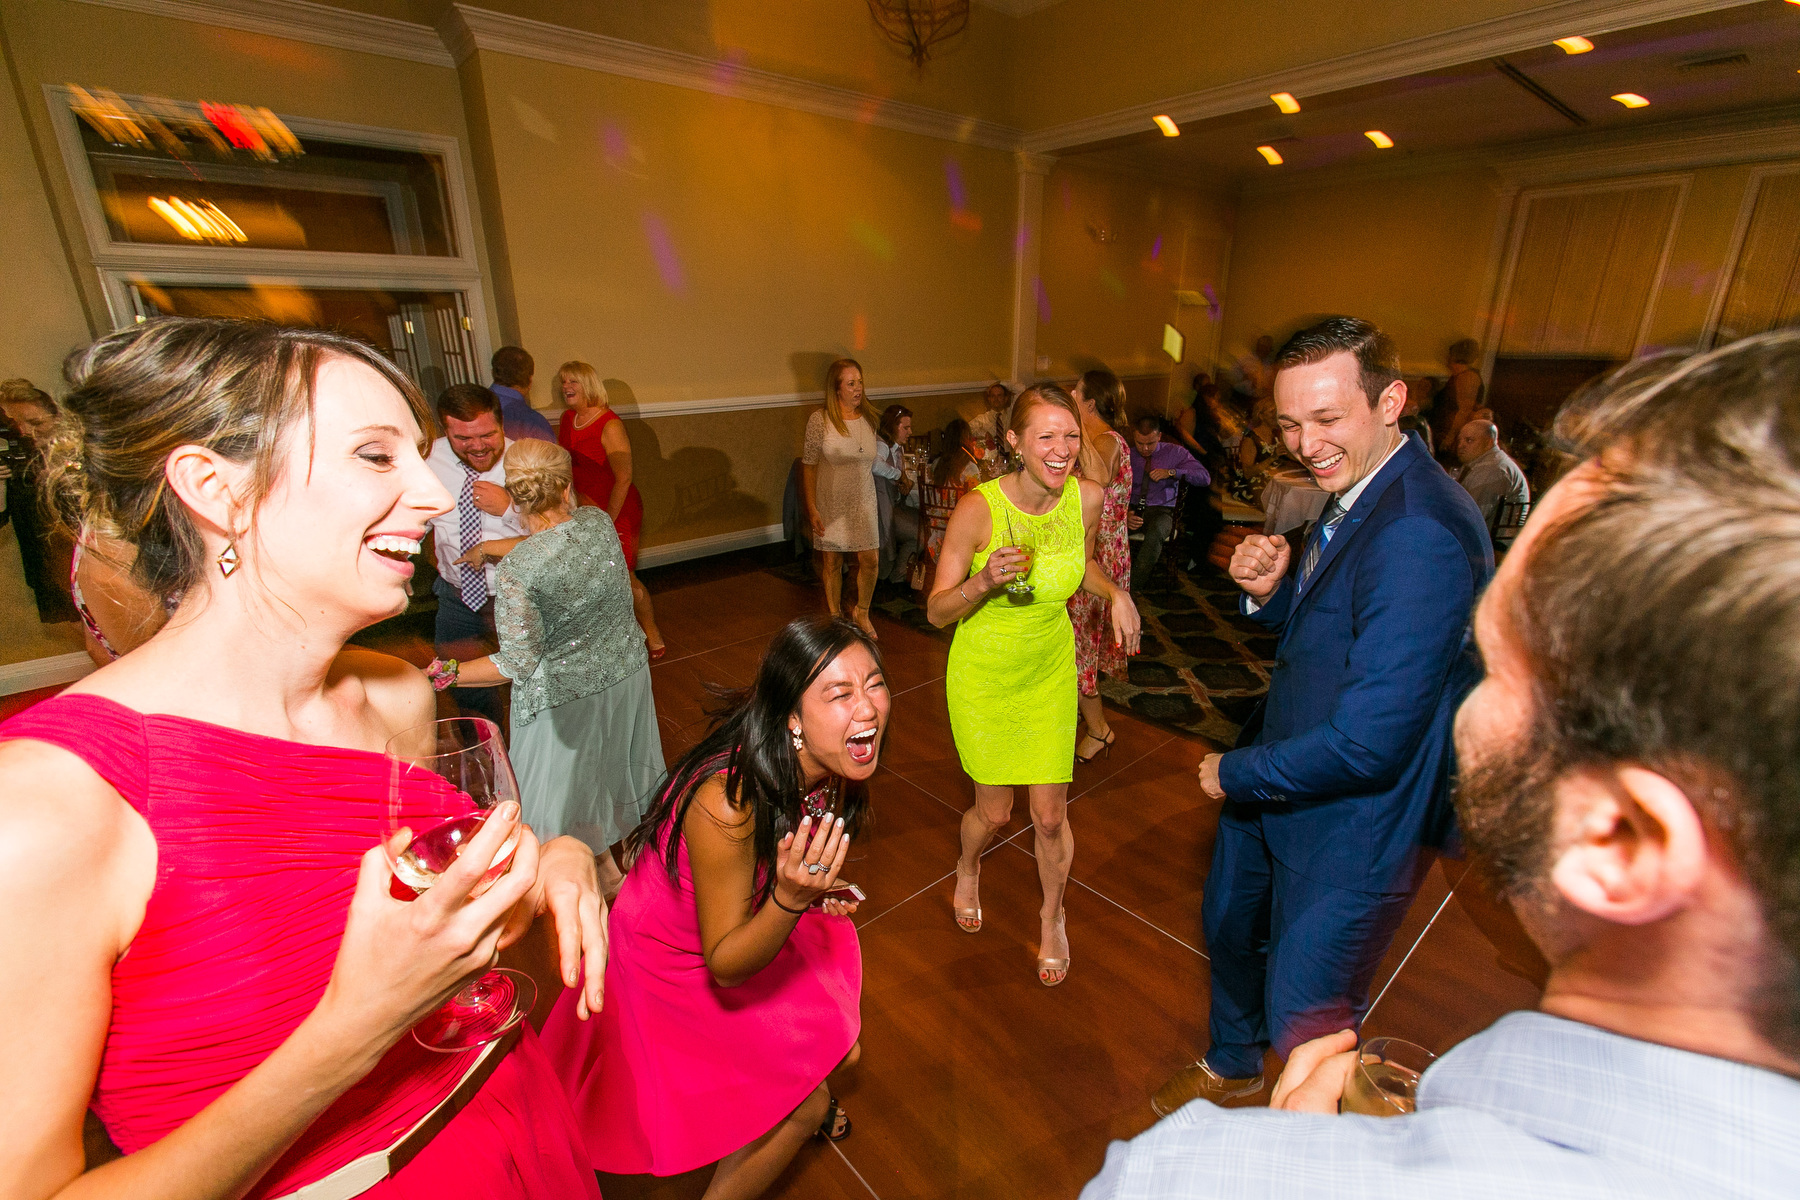 Weddng guests dance at a wedding at The Piedmont Club in Haymarket, VA